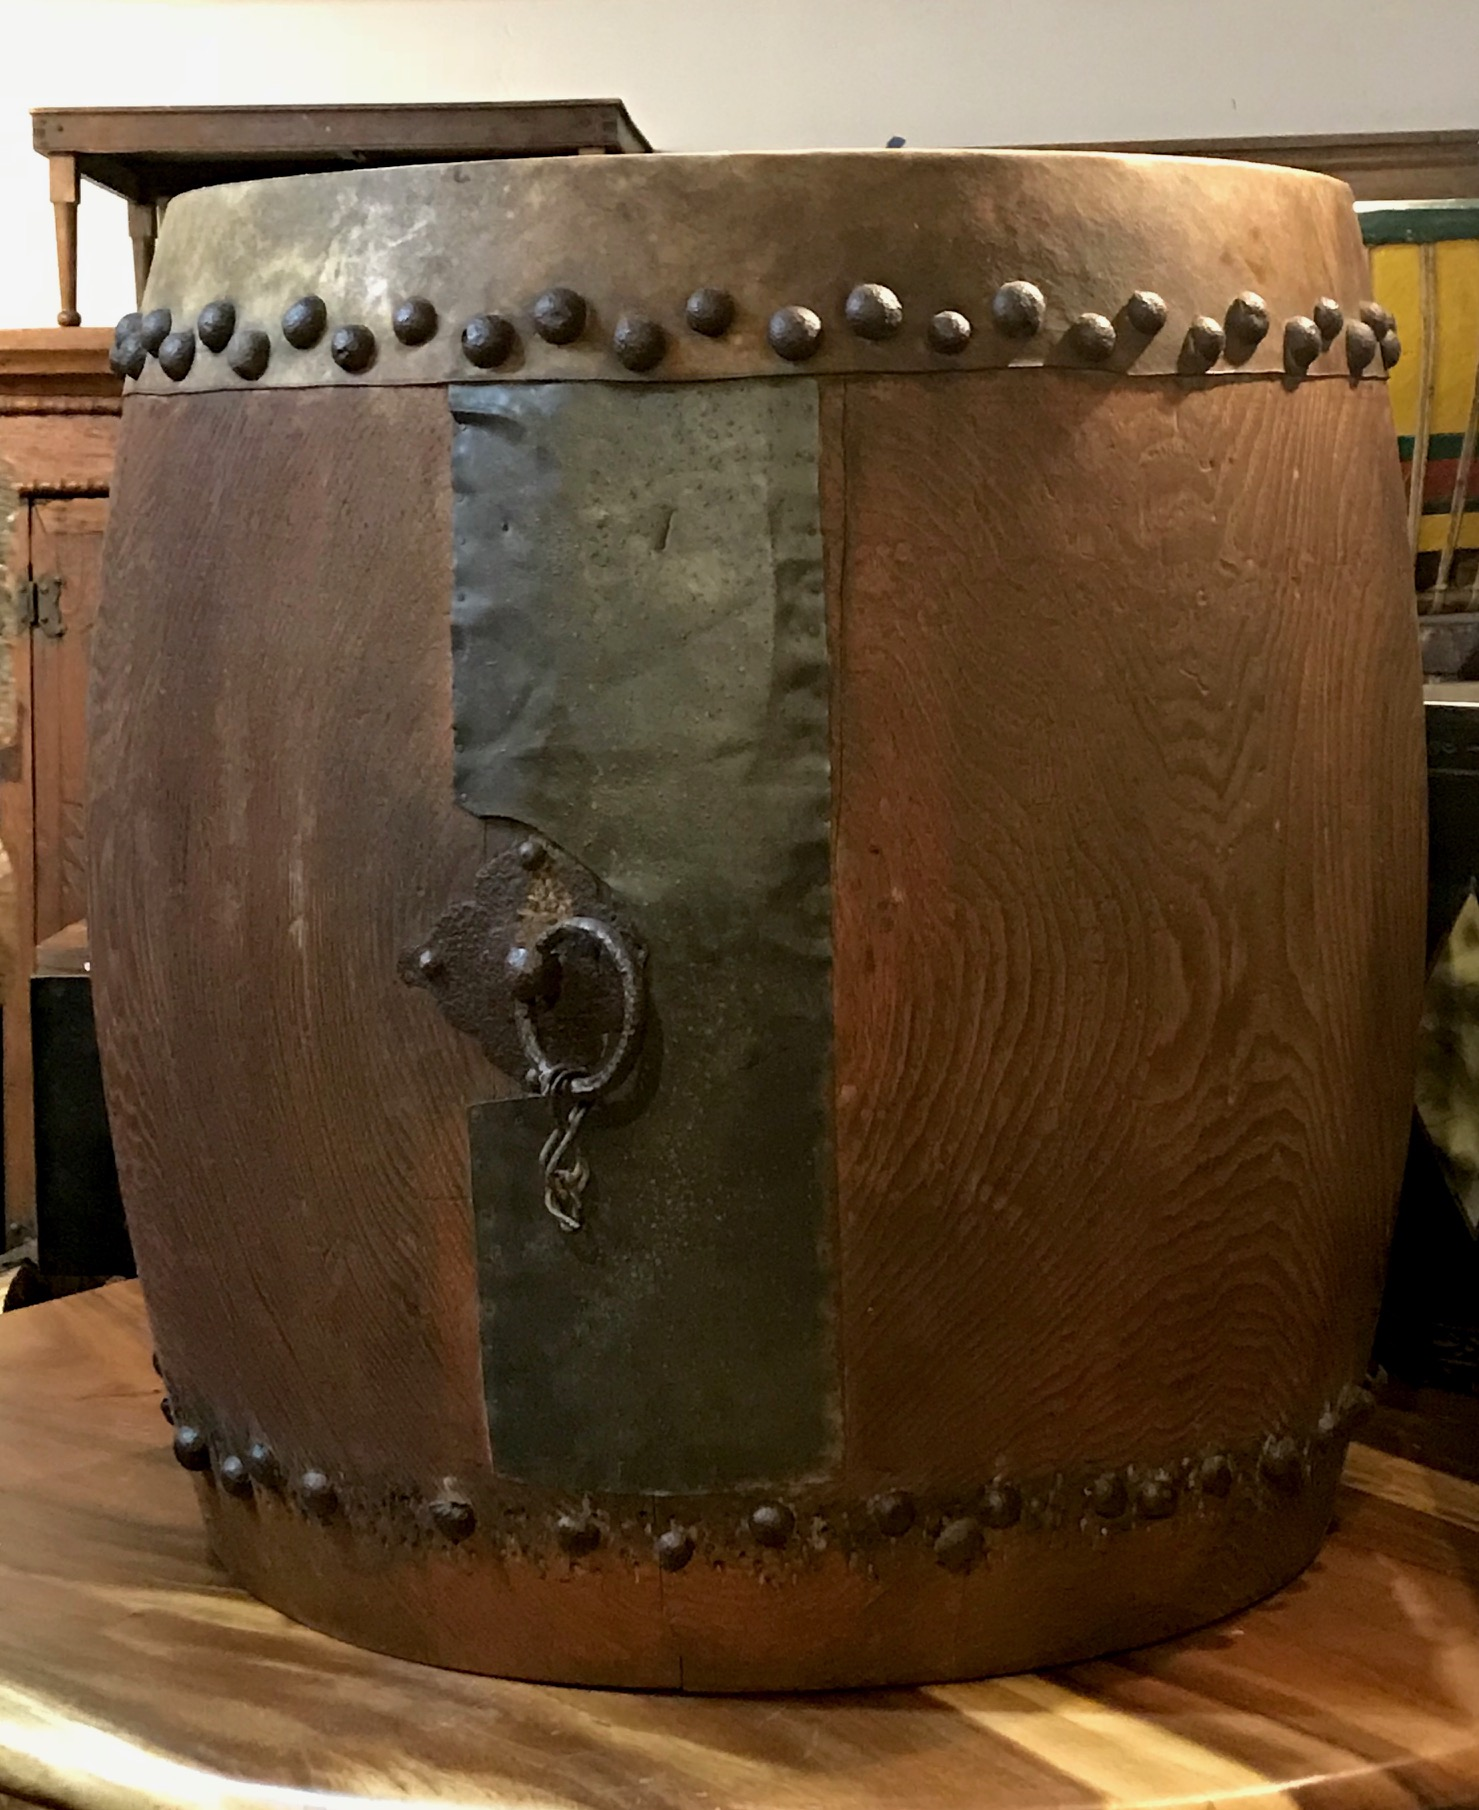 "Musical Instrument, Edo period Taiko Buddhist Drum, Japan, 18th c, keyaki wood (Japanese red elm), metal panel on side, metal tacks on rawhide skin (missing center of drum head skin on both sides) Metal ring with rope for carrying, 29 1/2"" x 34"", $2800. thedavidalancollection.com , solana beach, ca"